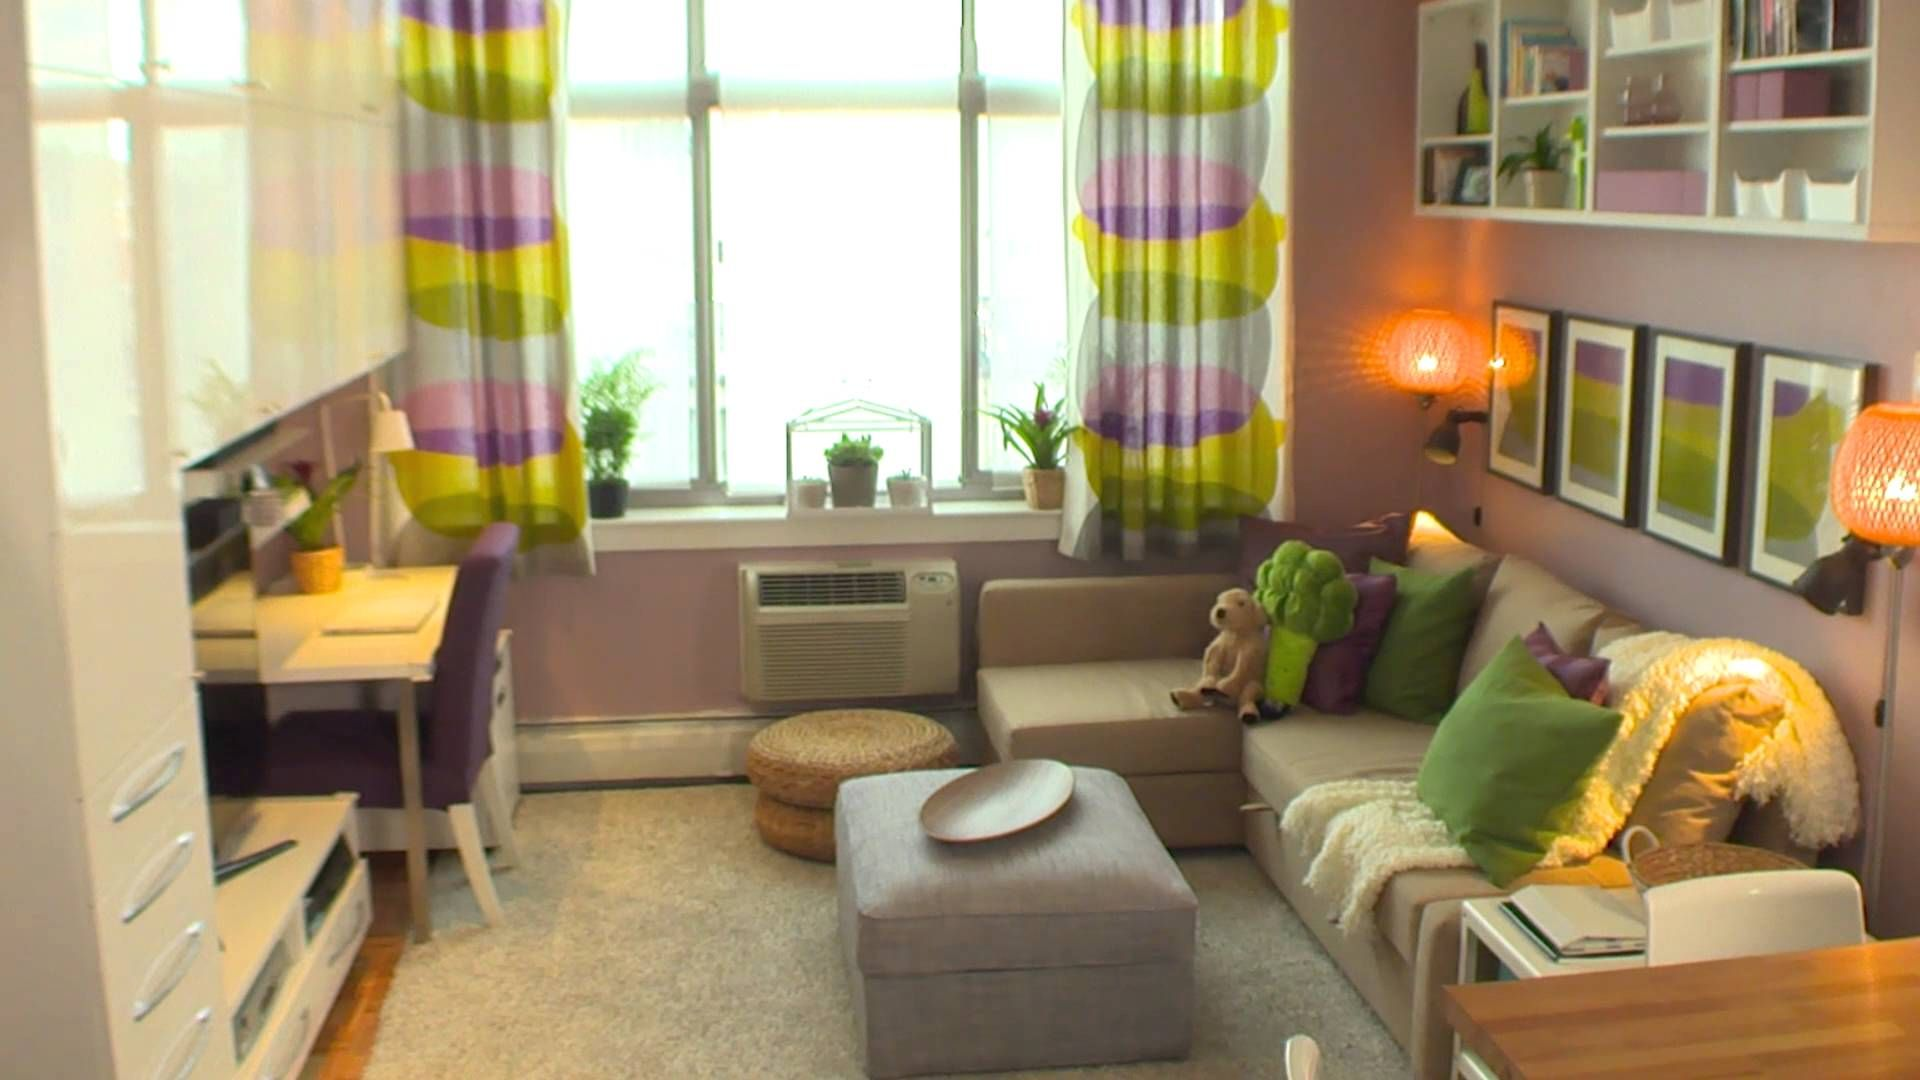 Living Room Makeover Ideas Ikea Home Tour Episode 113 Small Living Room Design Living Room Design Layout Small Living Rooms